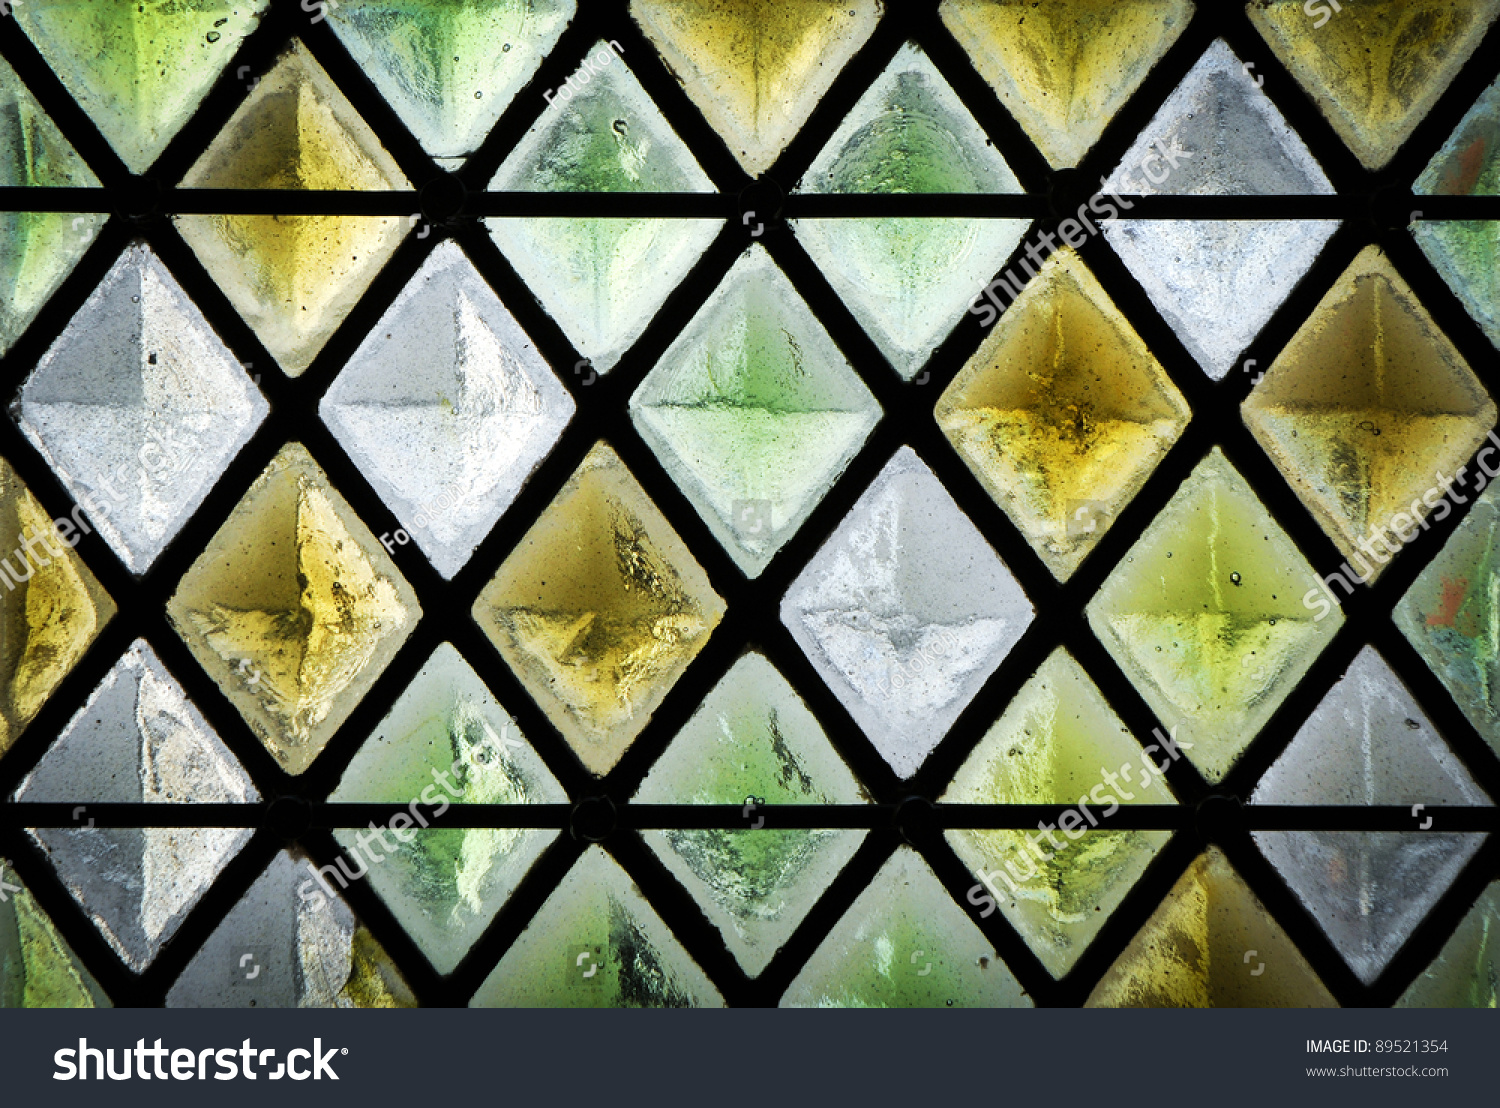 Diamond Shaped Pattern Of A Stained Glass Window Stock